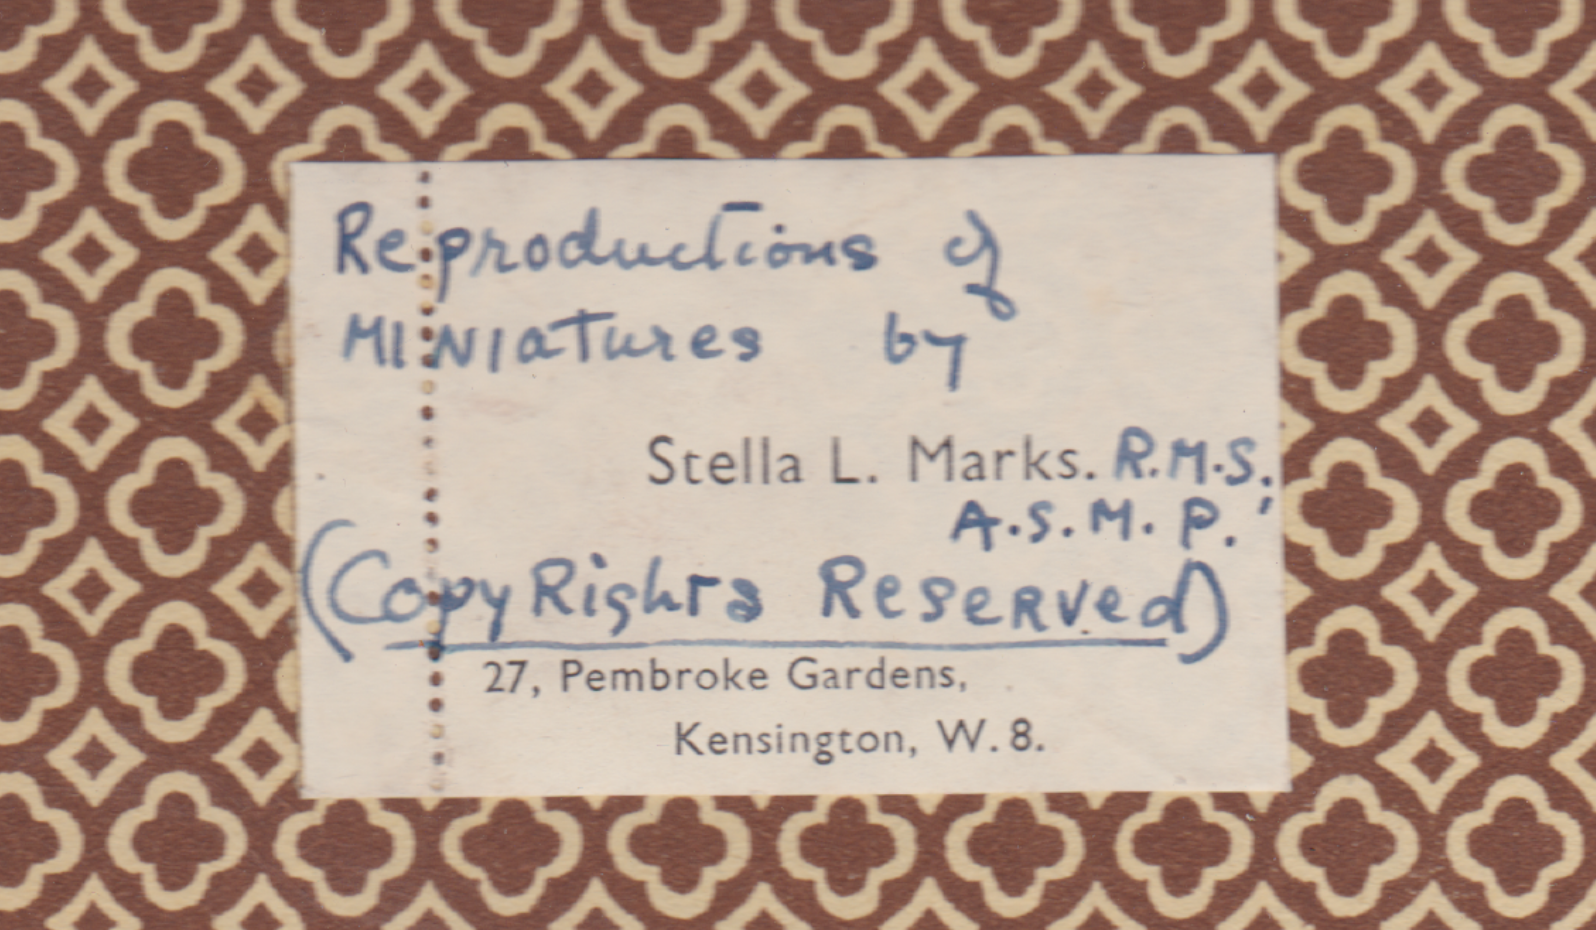 The inside page of Stella Mark's Book Displaying Photographs of some of her work